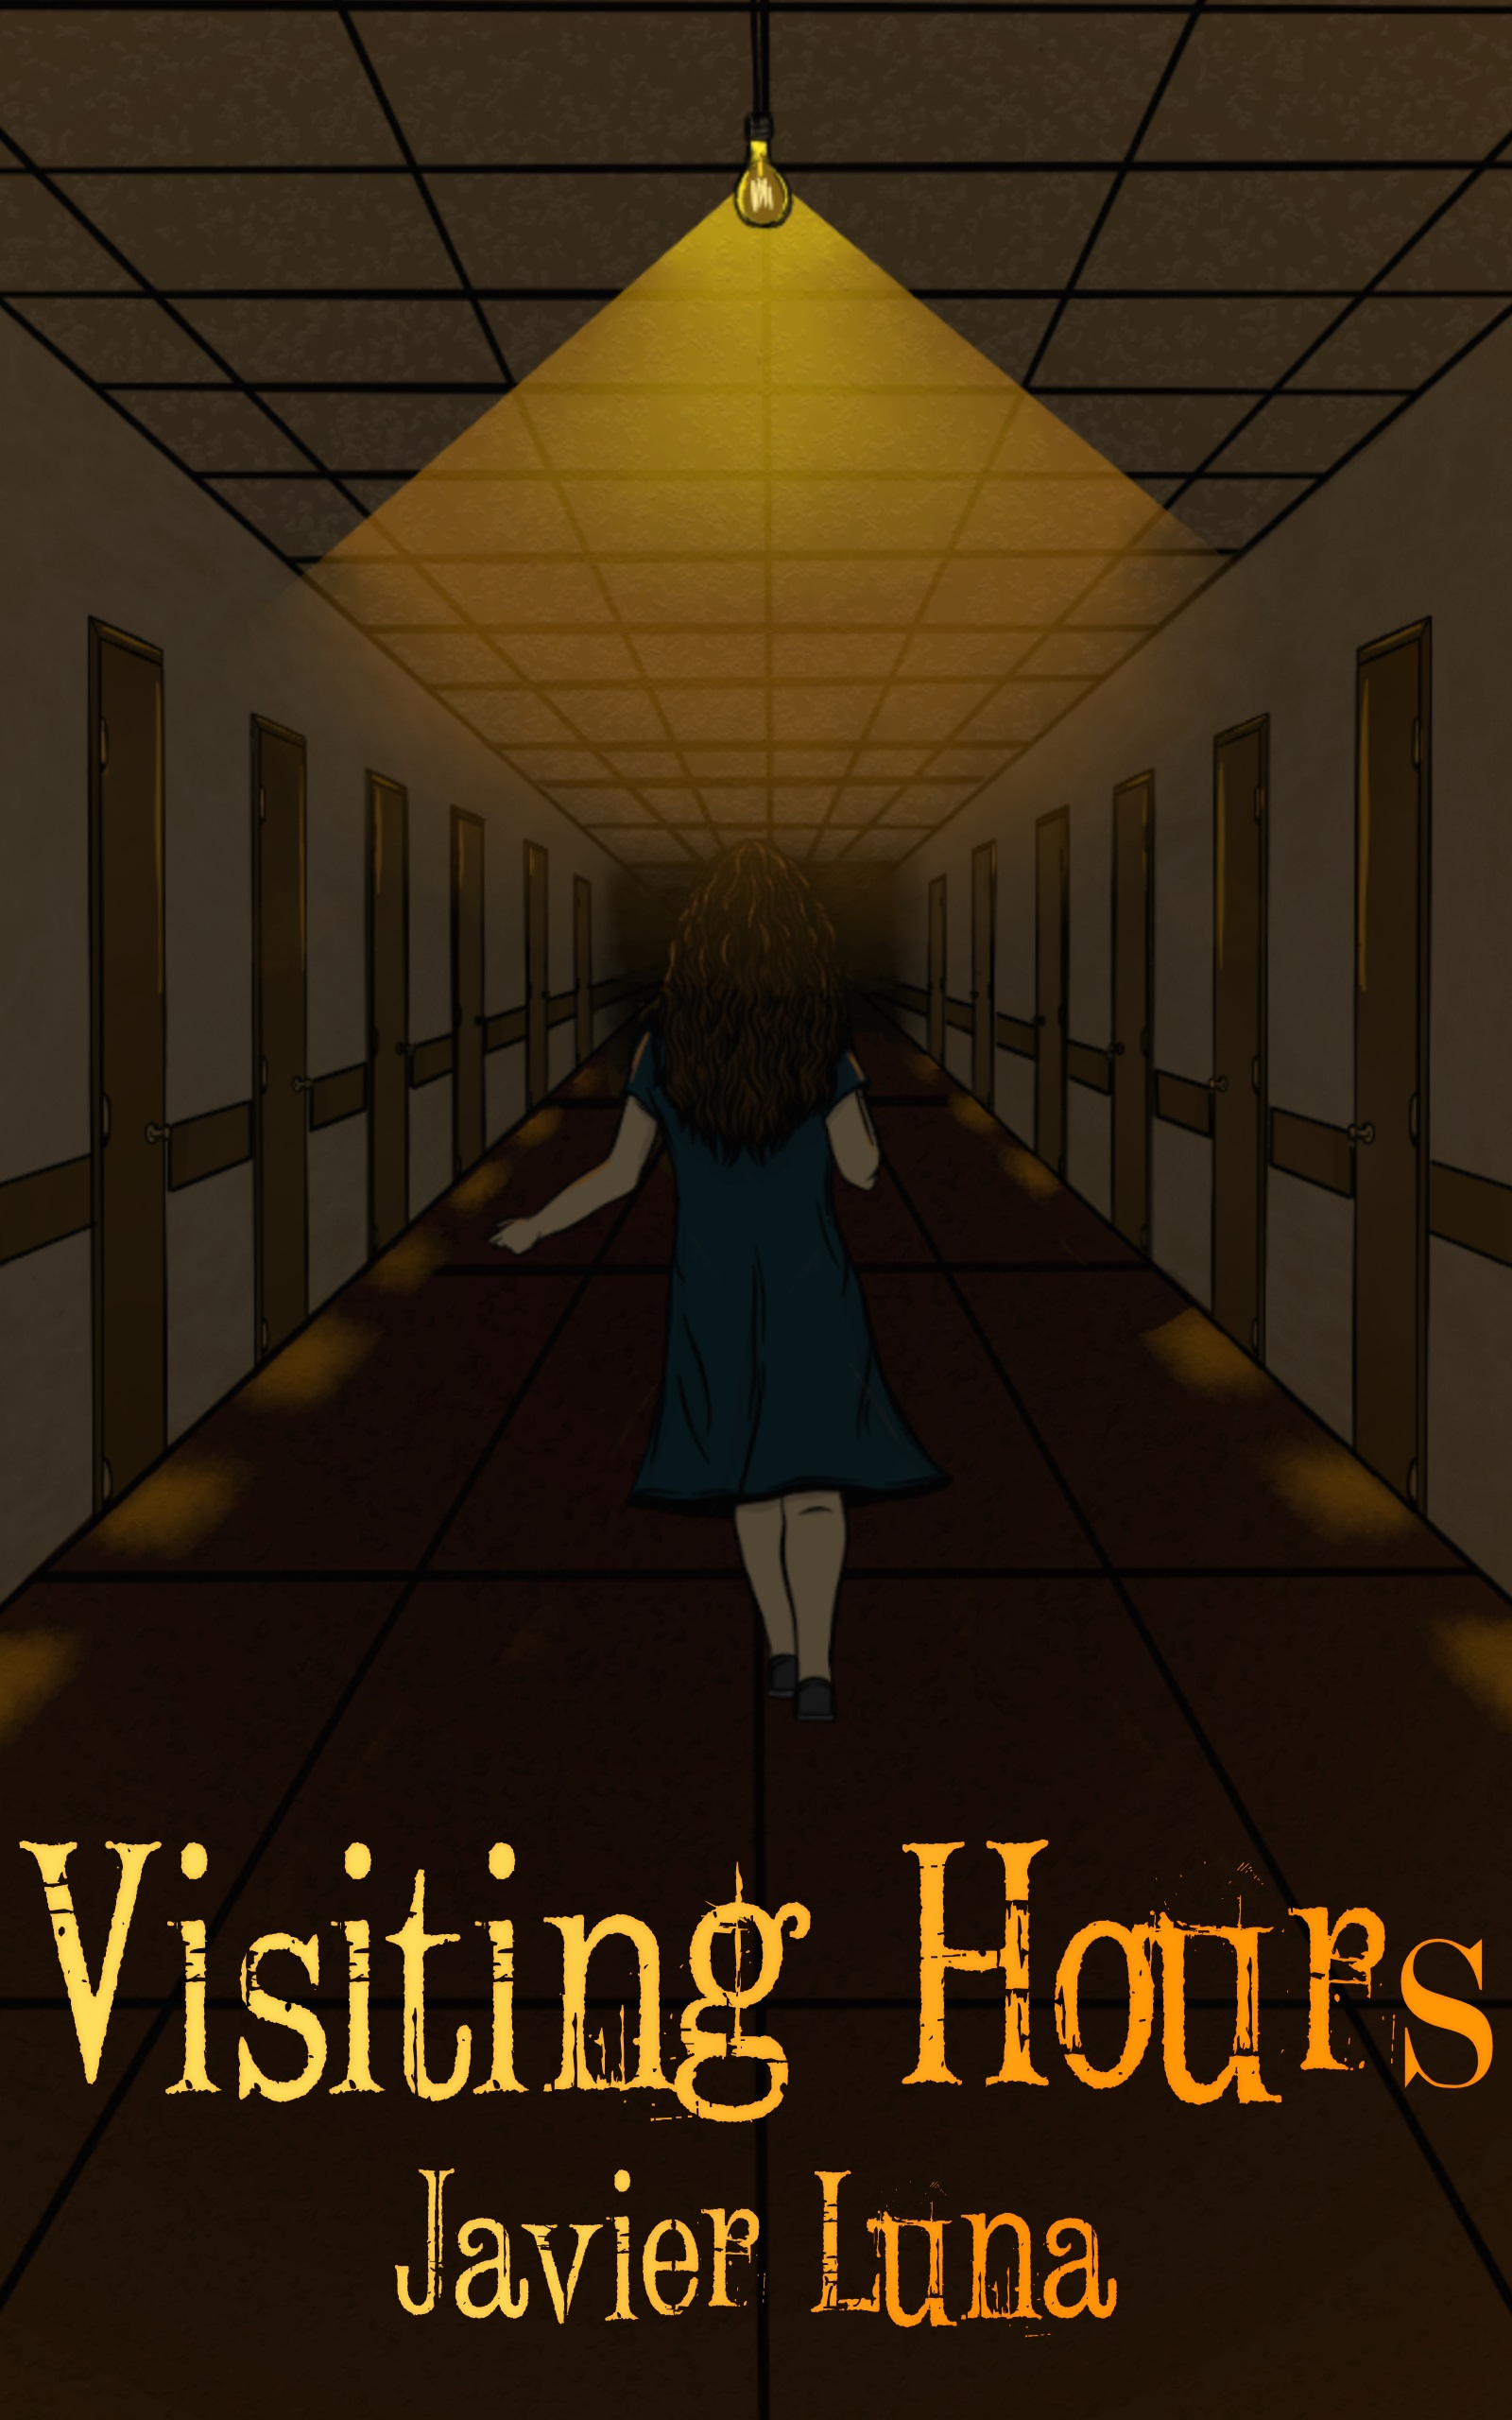 Visiting Hours - Now available in Kindle format for only $2.99!